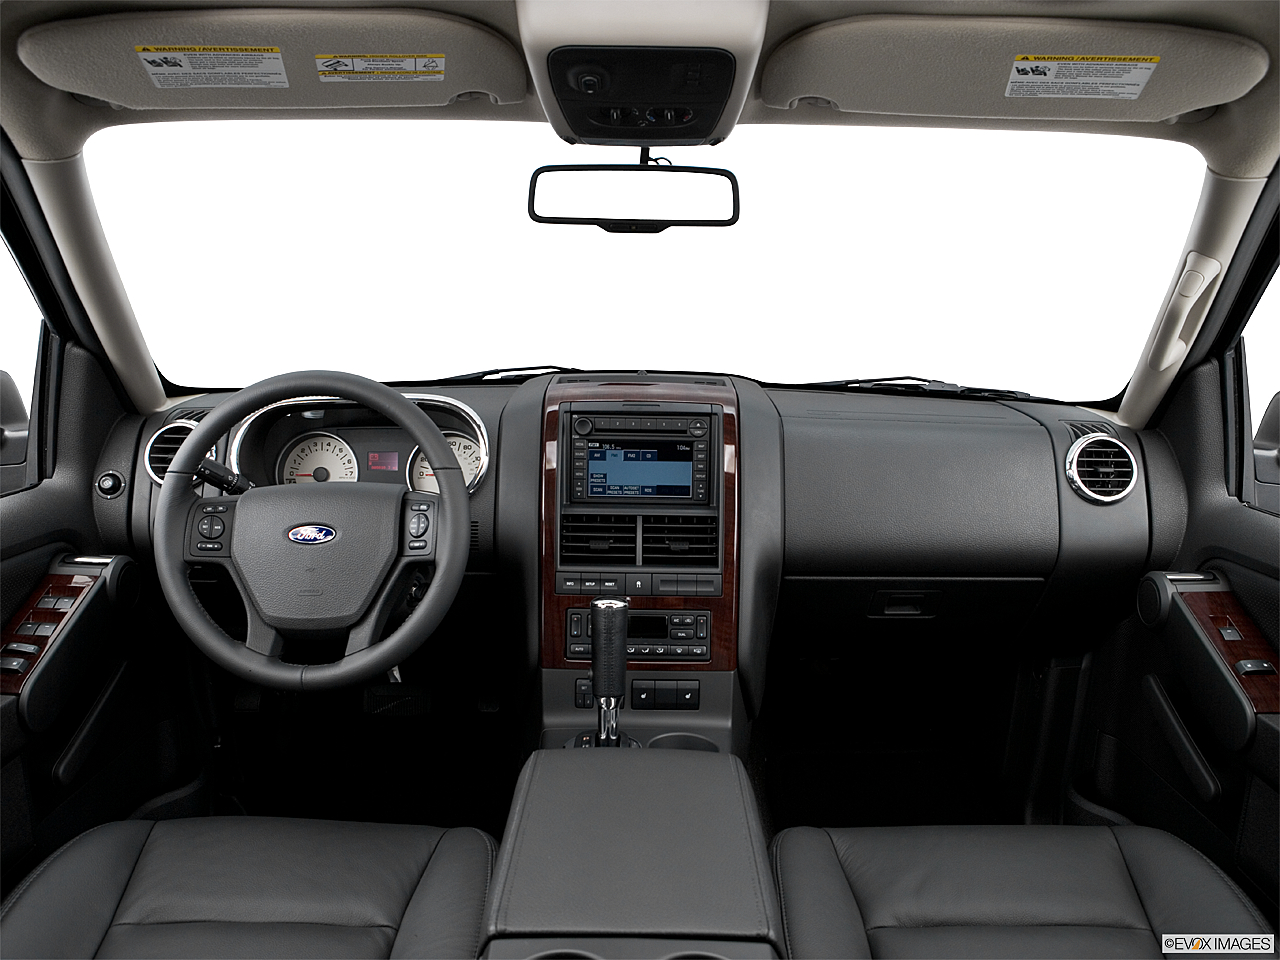 2006 Ford Explorer Limited, centered wide dash shot